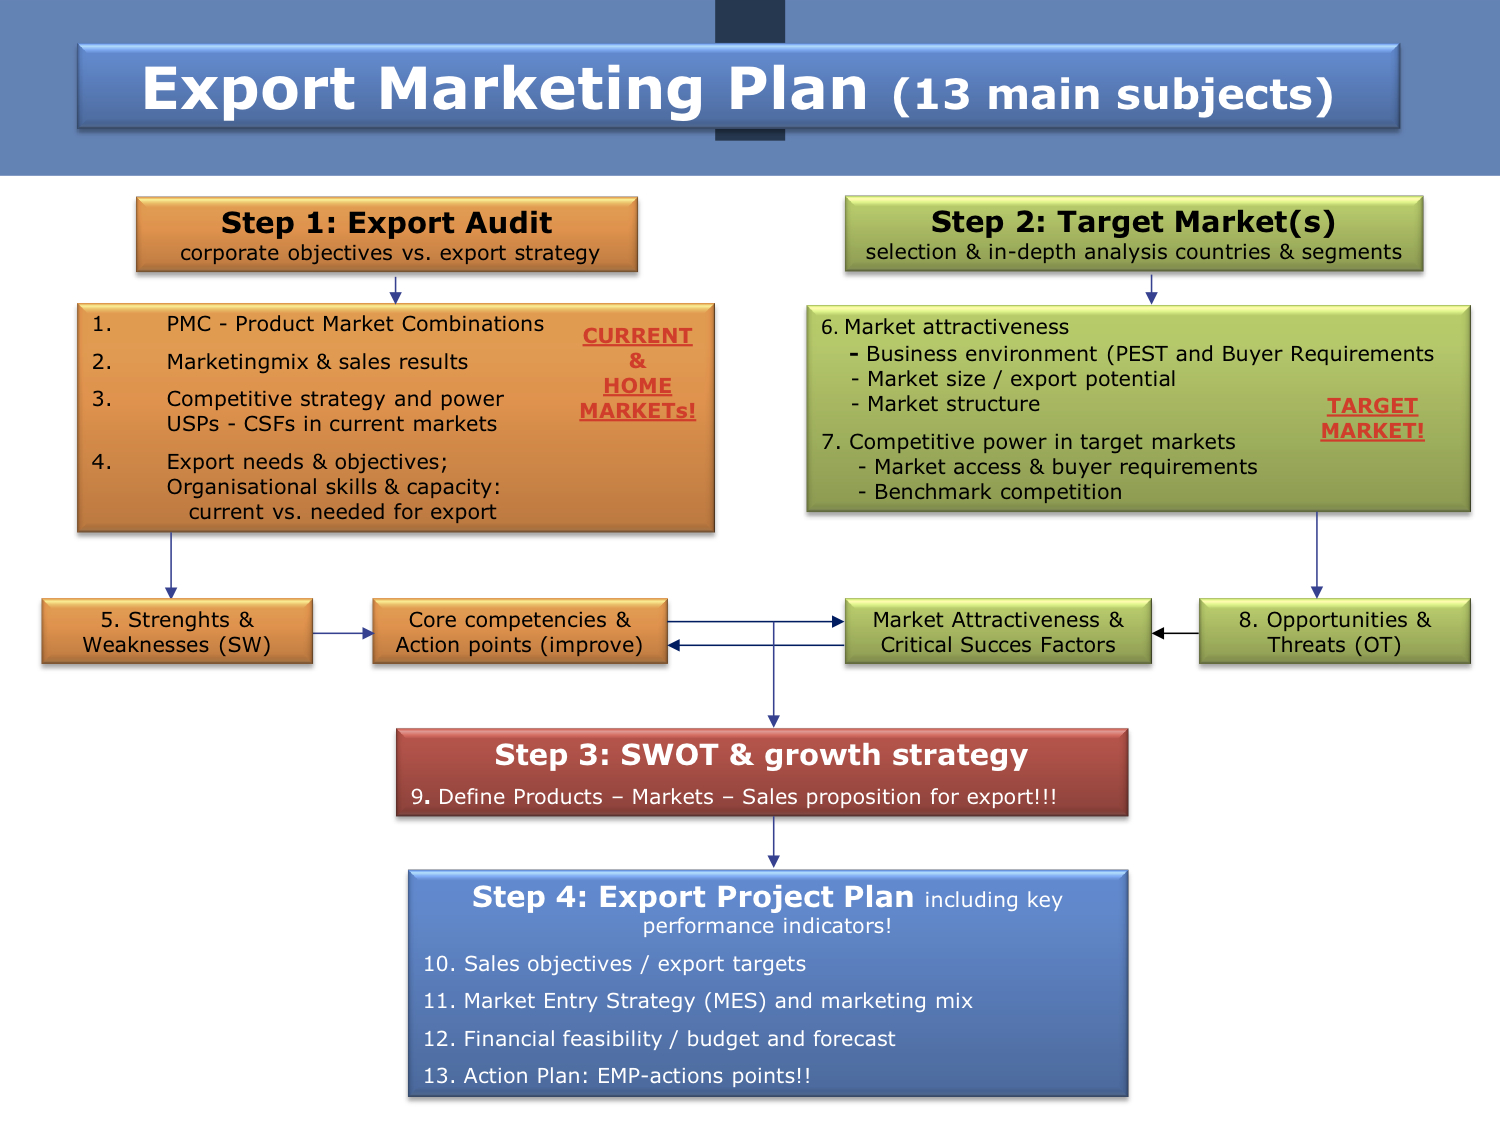 EMP model (4 main steps summarized) on website